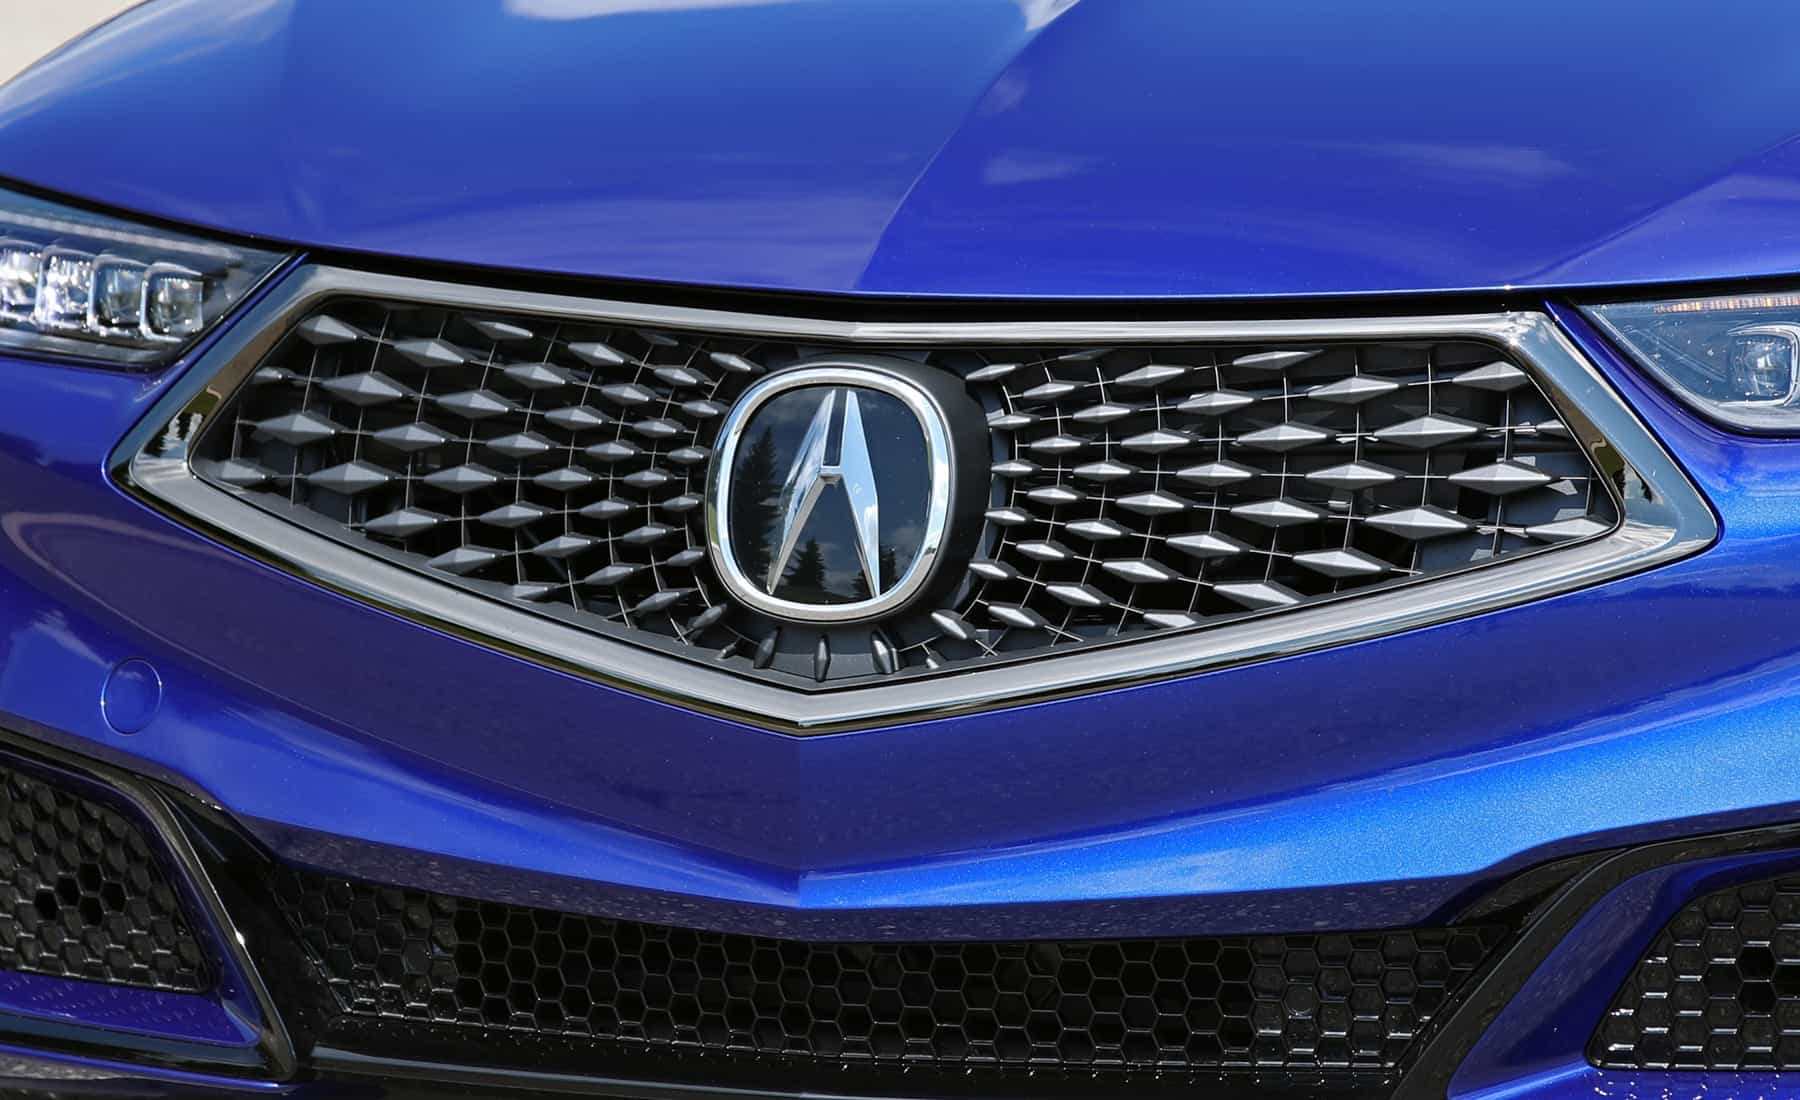 2018 Acura TLX Exterior View Grille And Badge (Photo 9 of 46)